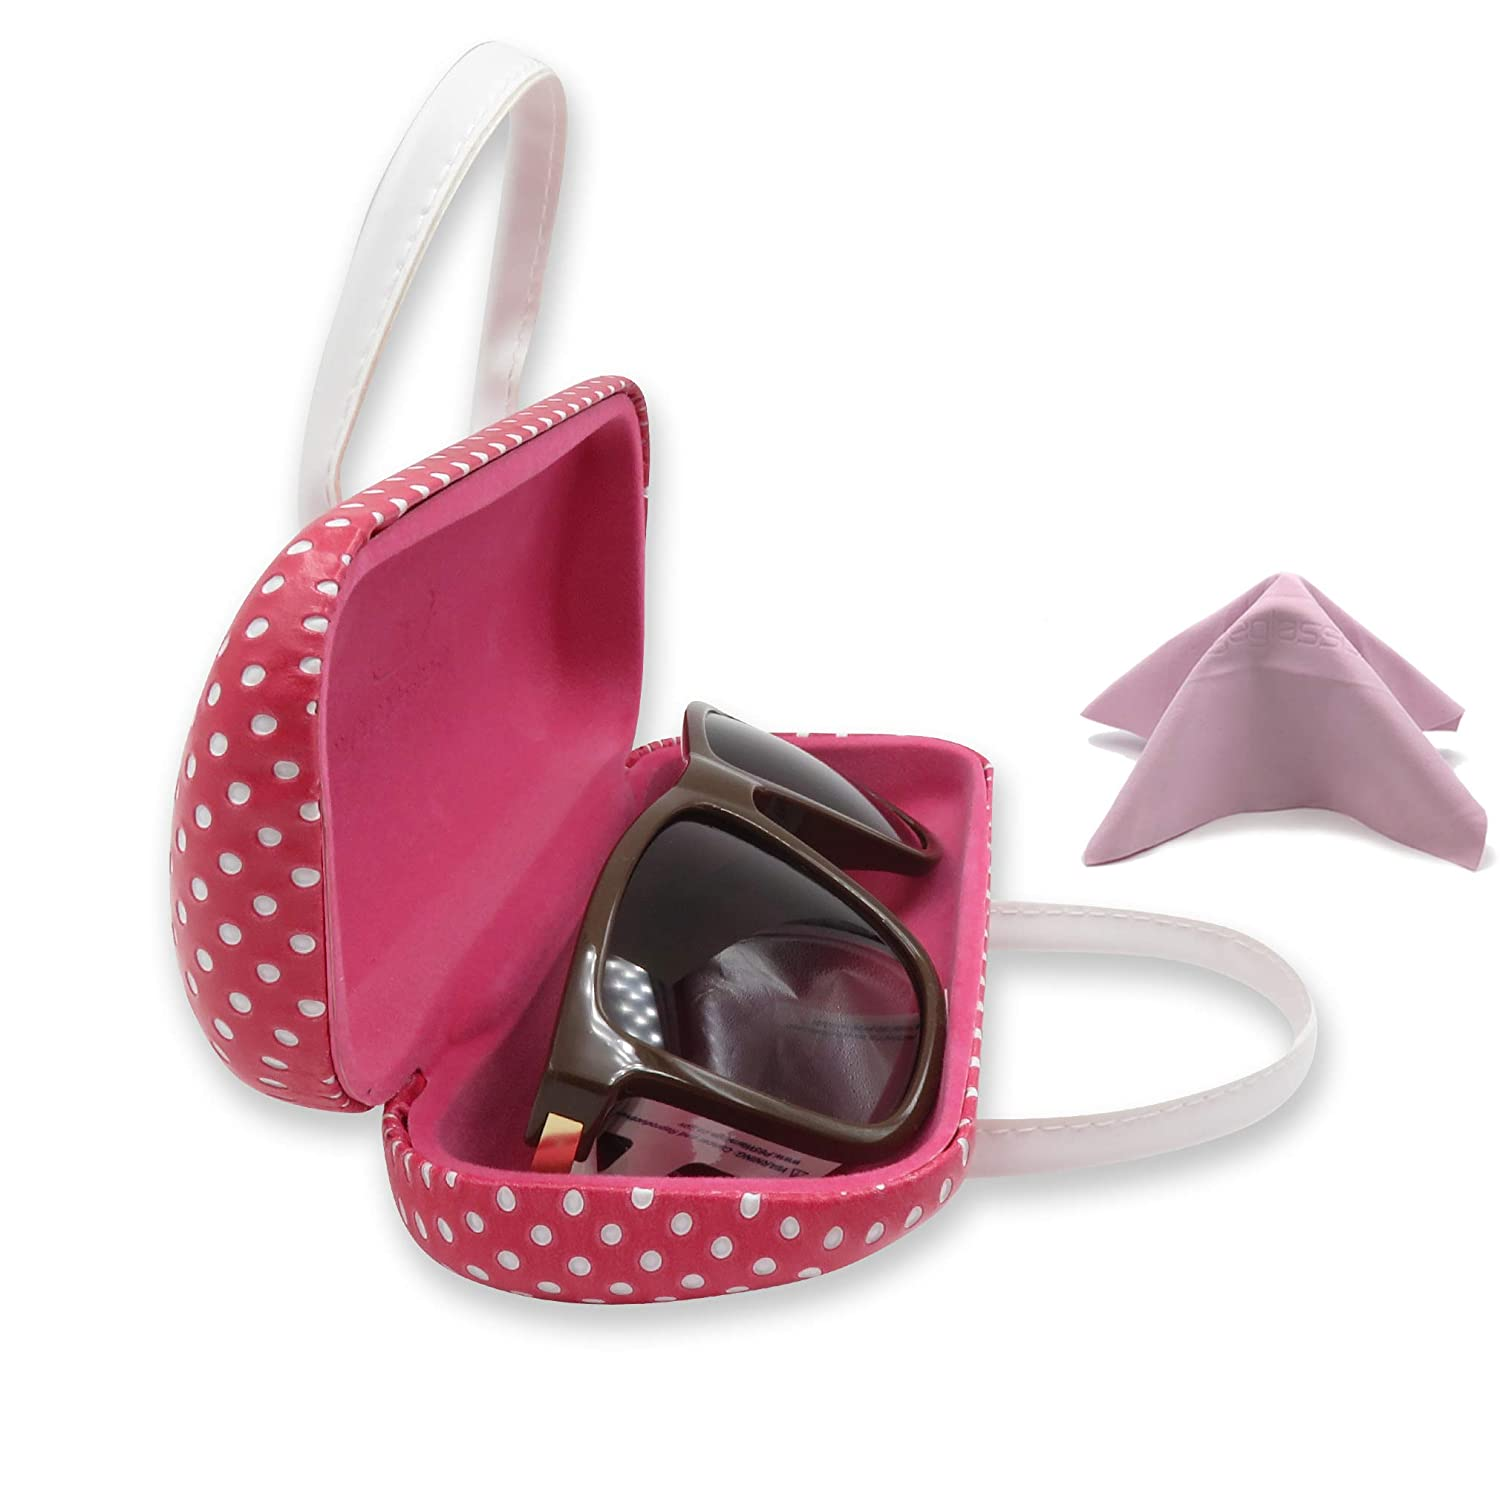 Minibag Eyeglass Case /& Sunglasses Case Protects Medium to Large Frames